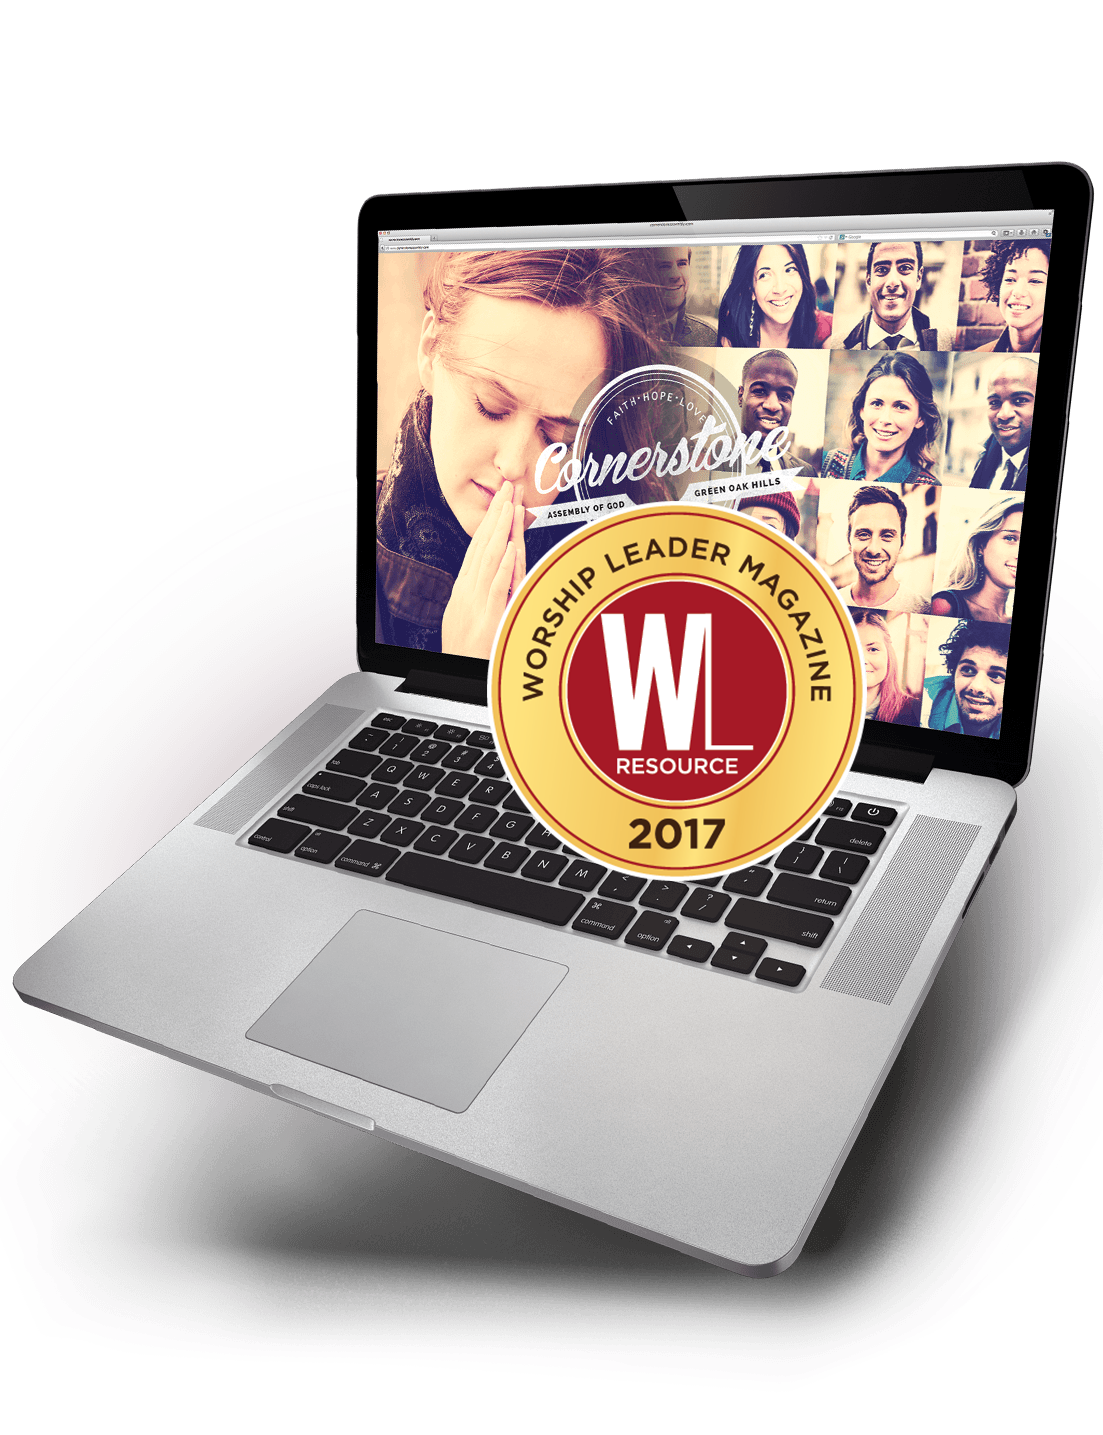 Sharefaith Has Won the Worship Leader Best-of-the-Best Award 3 Years in a Row!